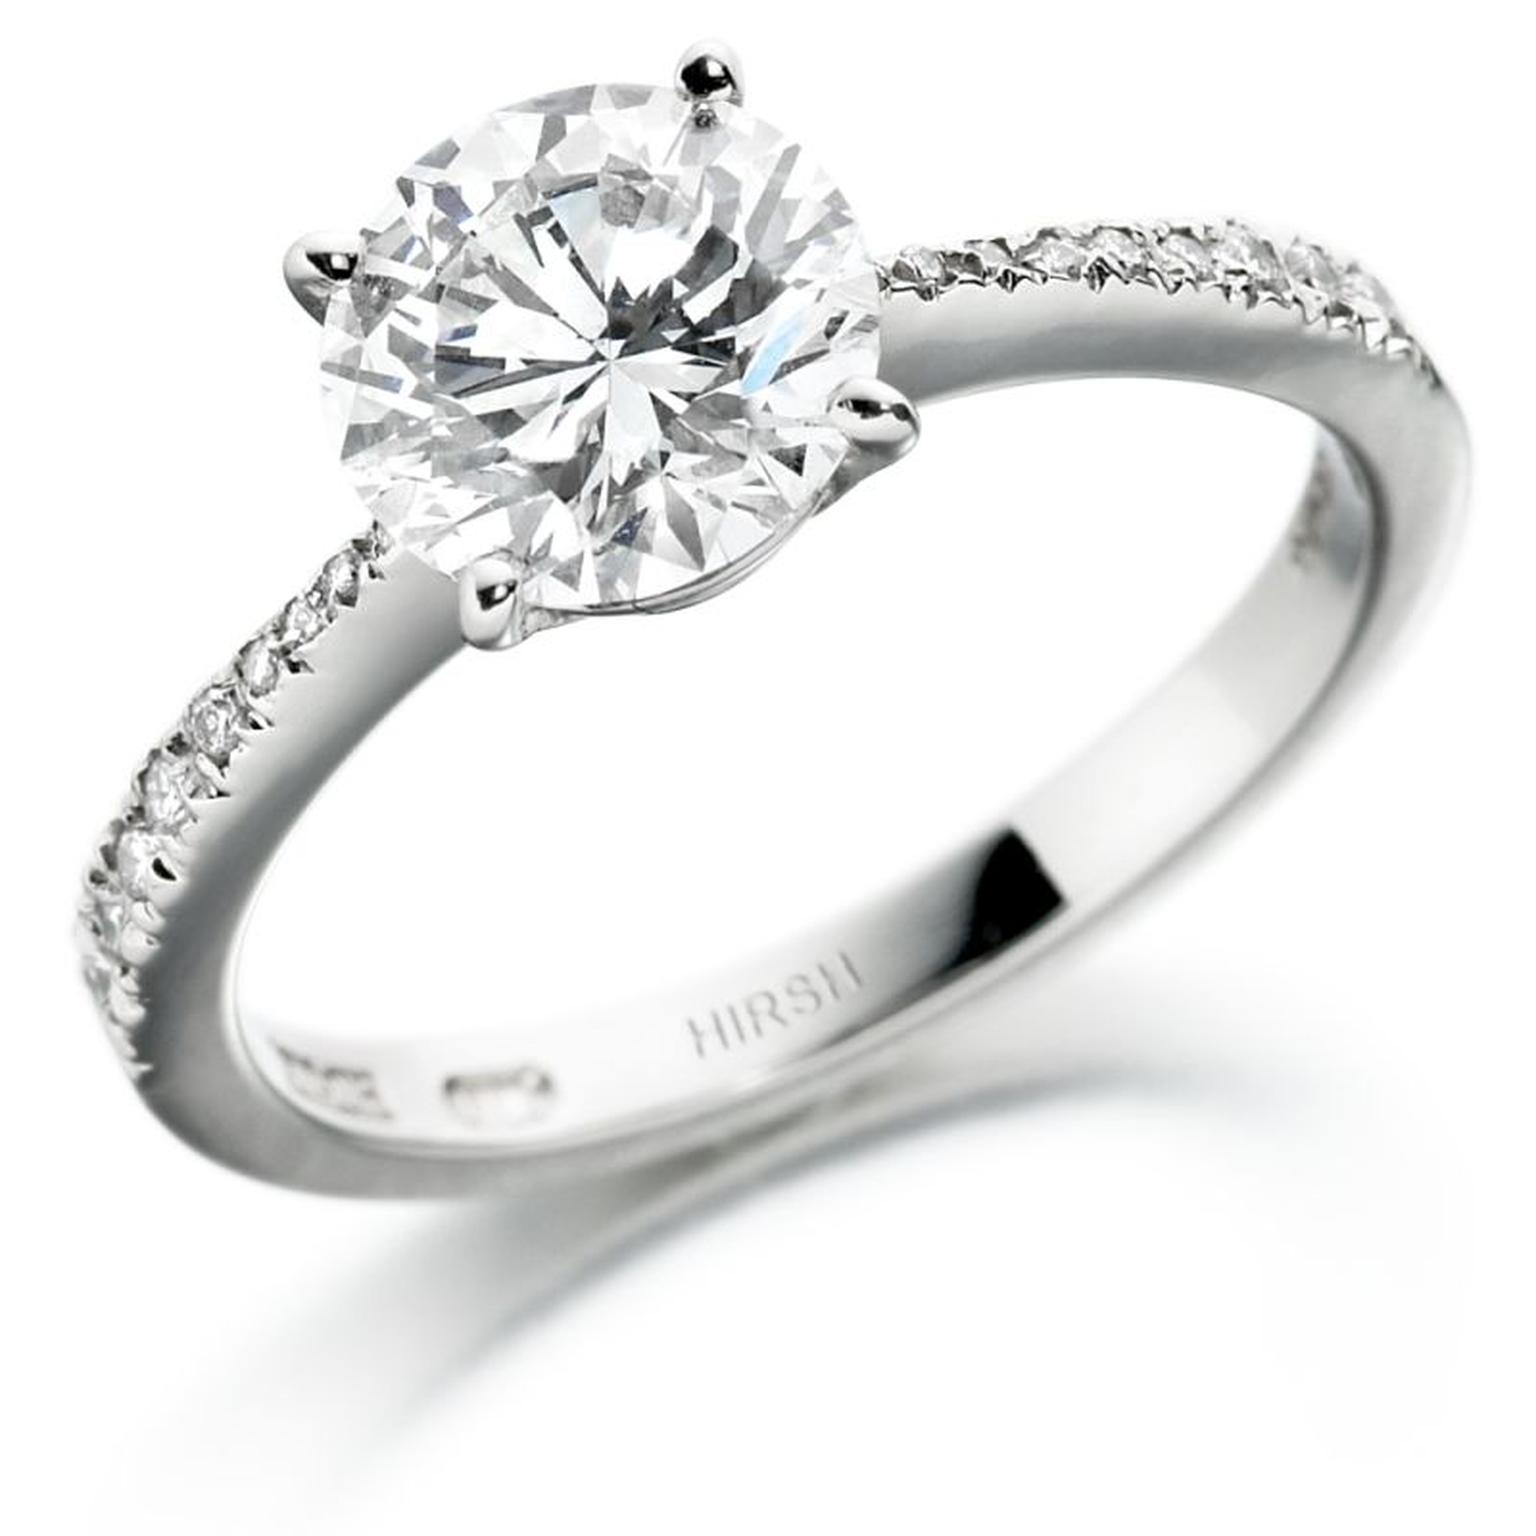 Hirsh 1.50ct brilliant-cut diamond engagement ring with a diamond pave´ band (£30,000).